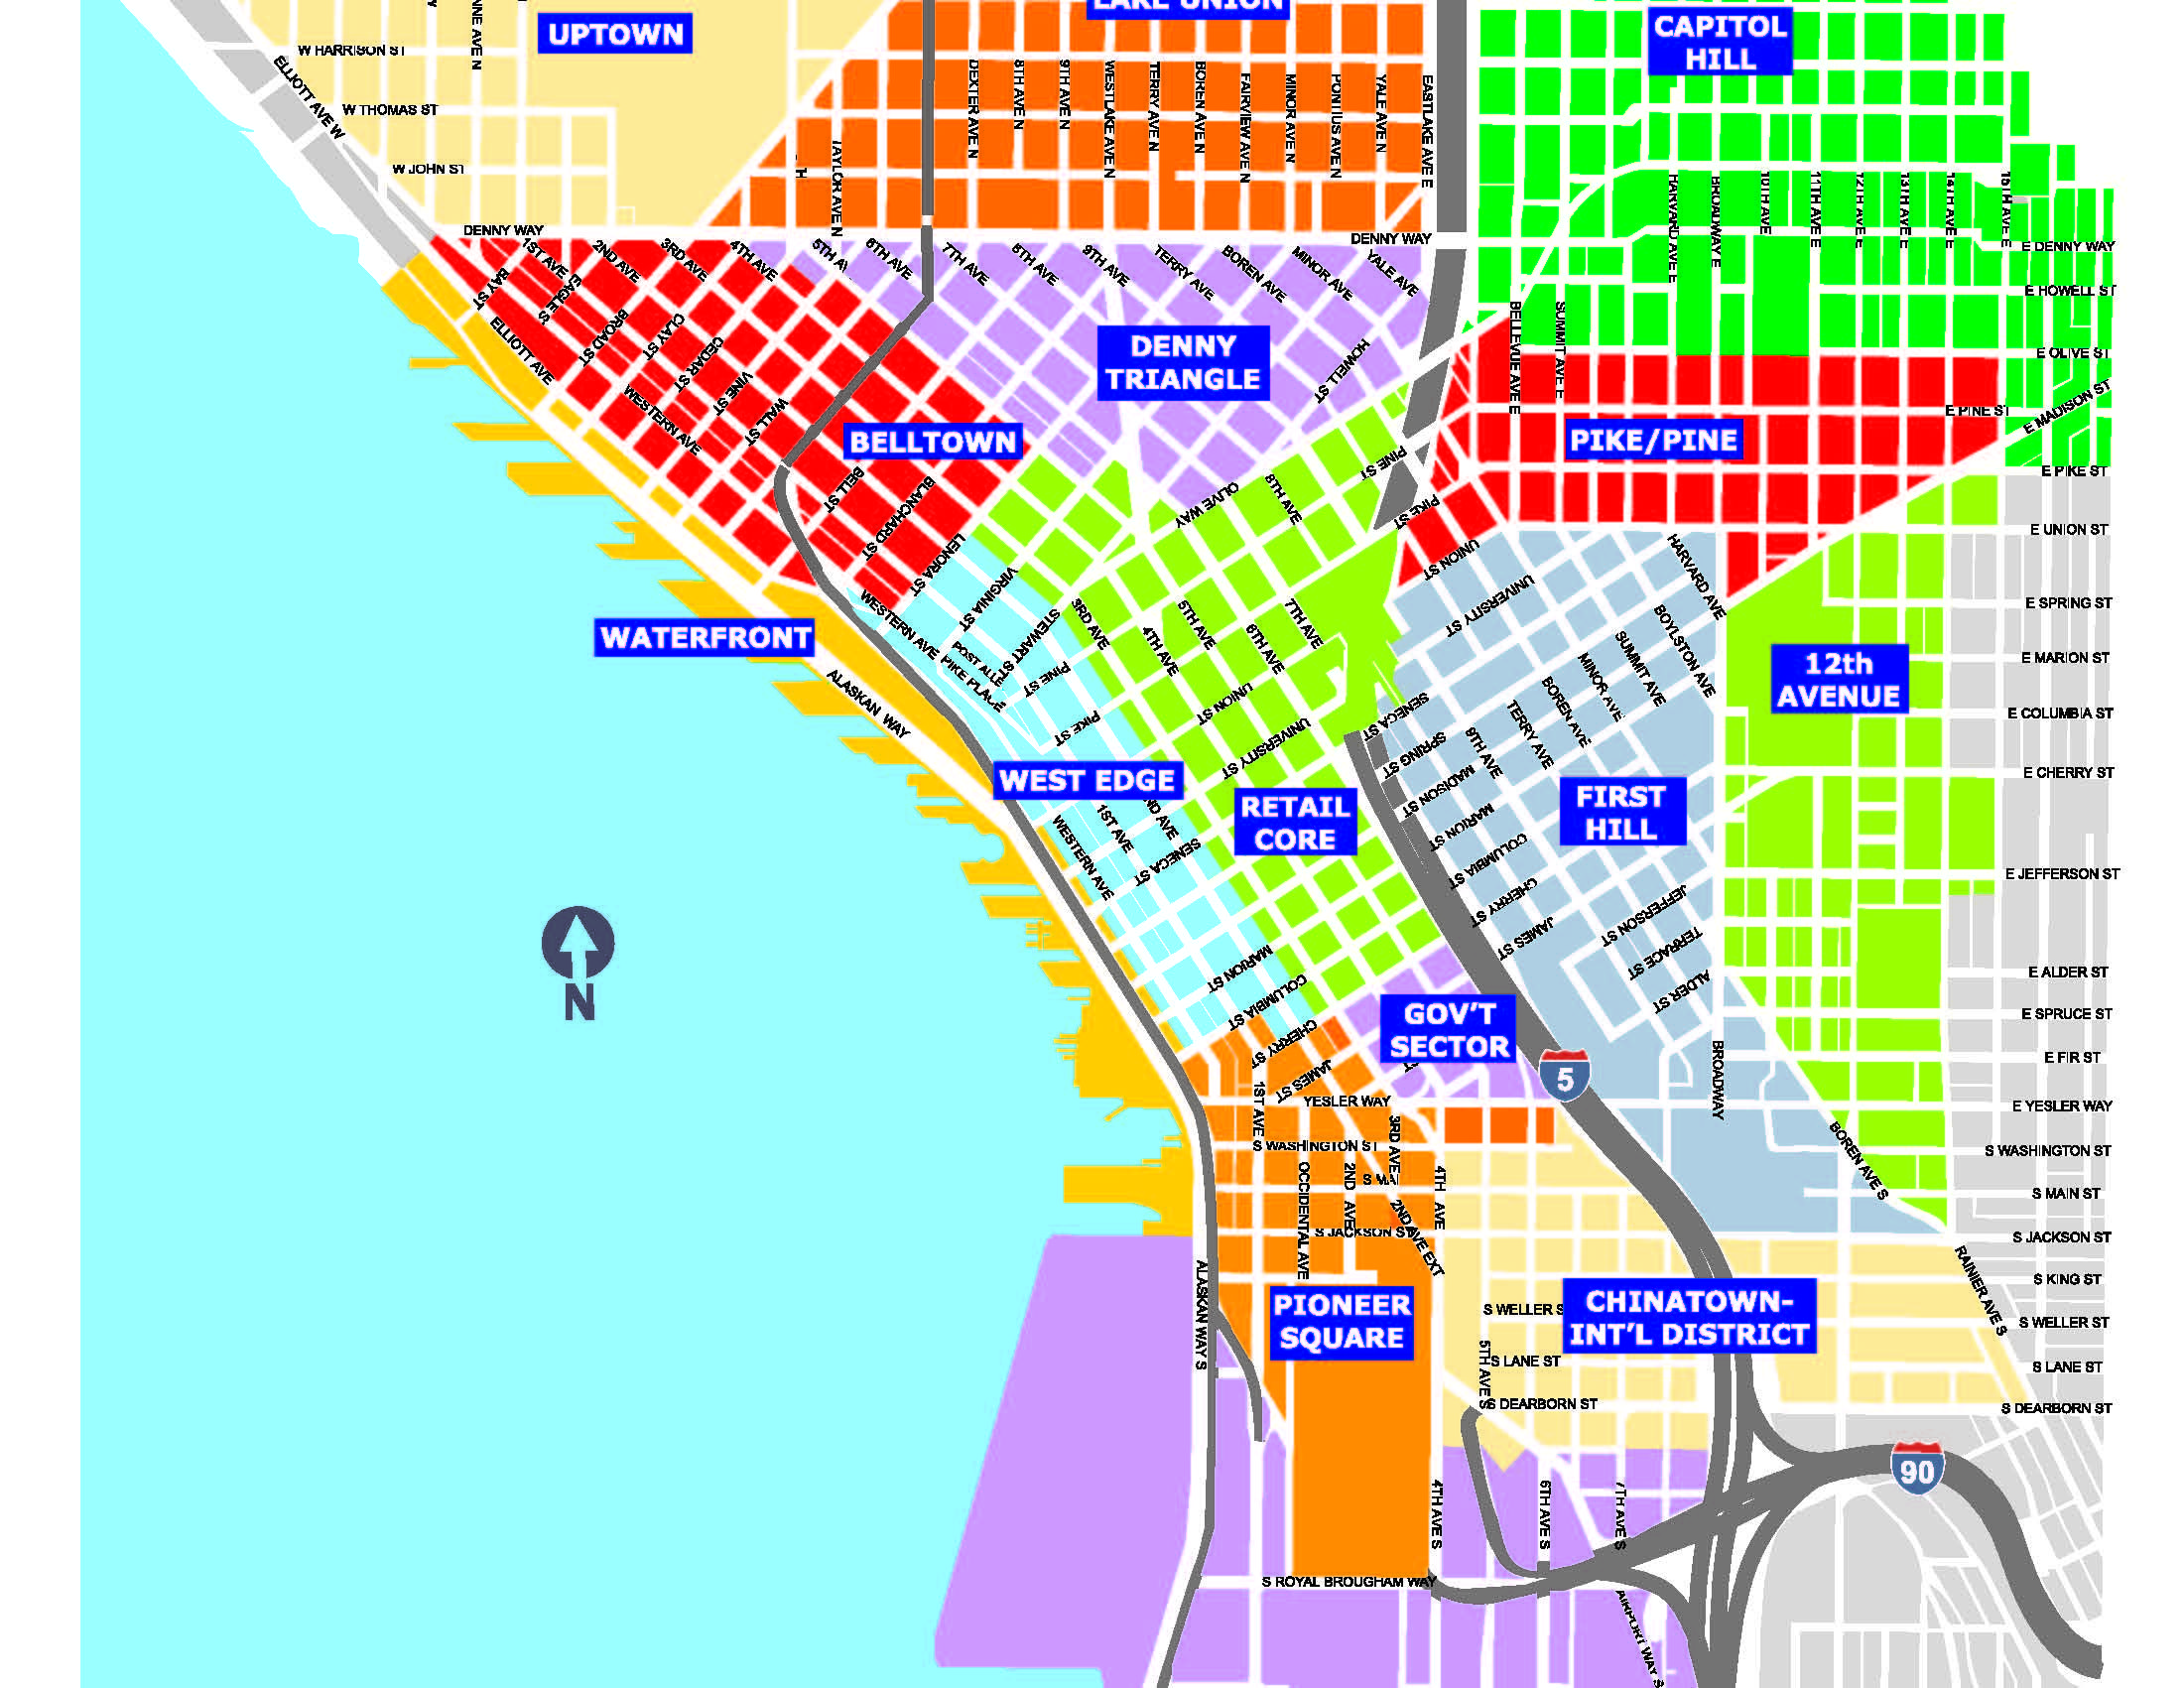 Pin by franceseattle on Maps, Charts, & Graphs | Map, Seattle ... Downtown Seattle Map on